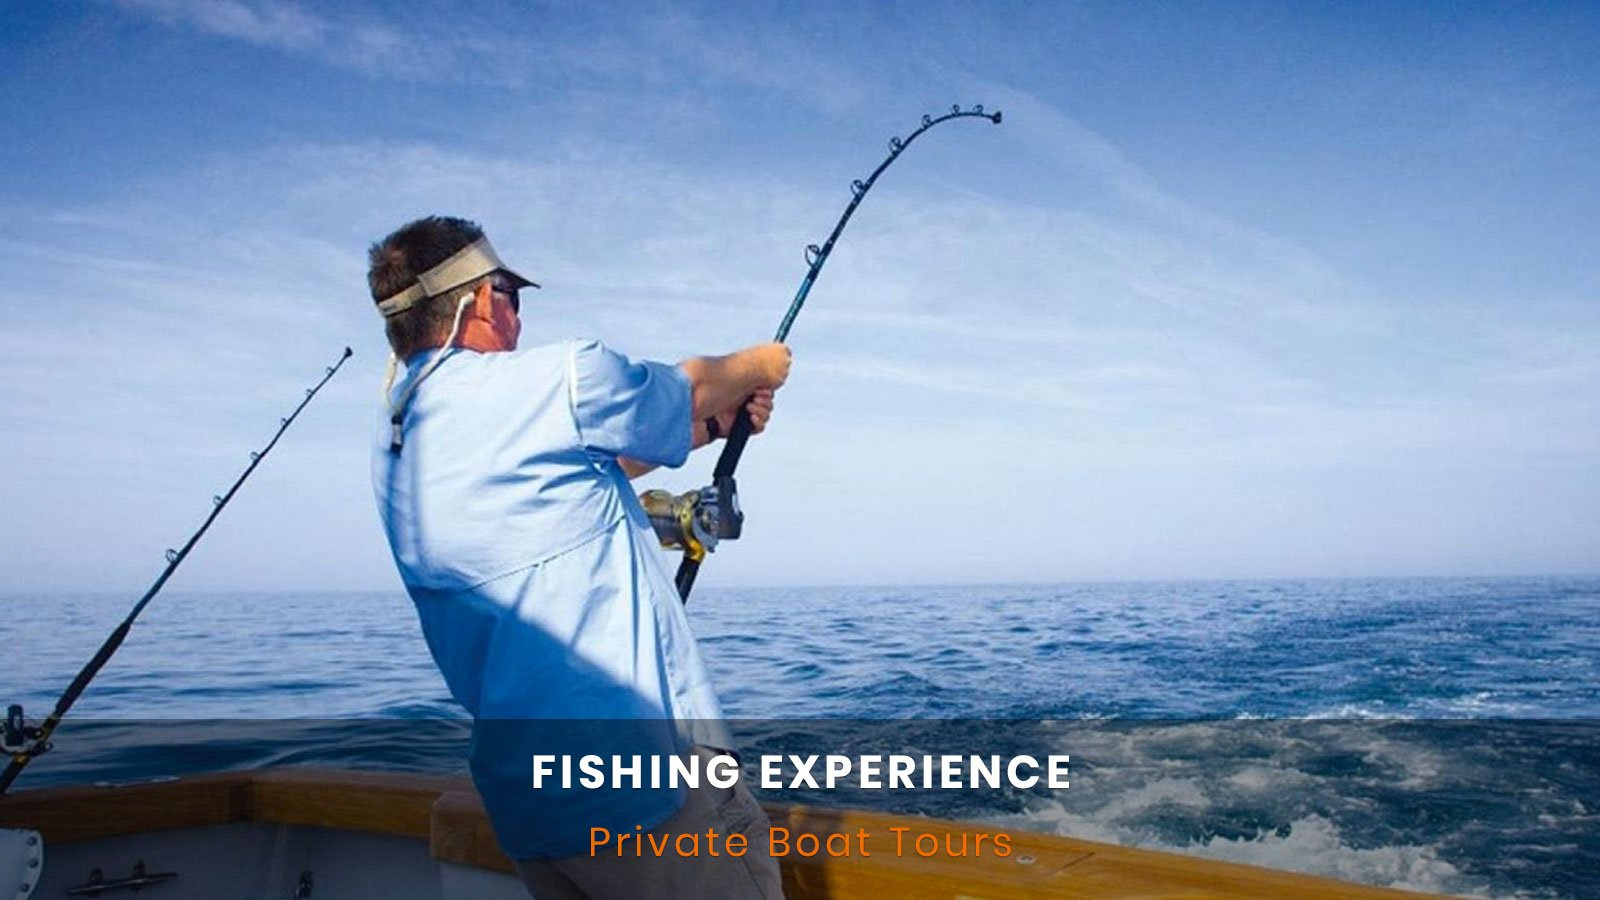 Fishing Experience Boat Tour